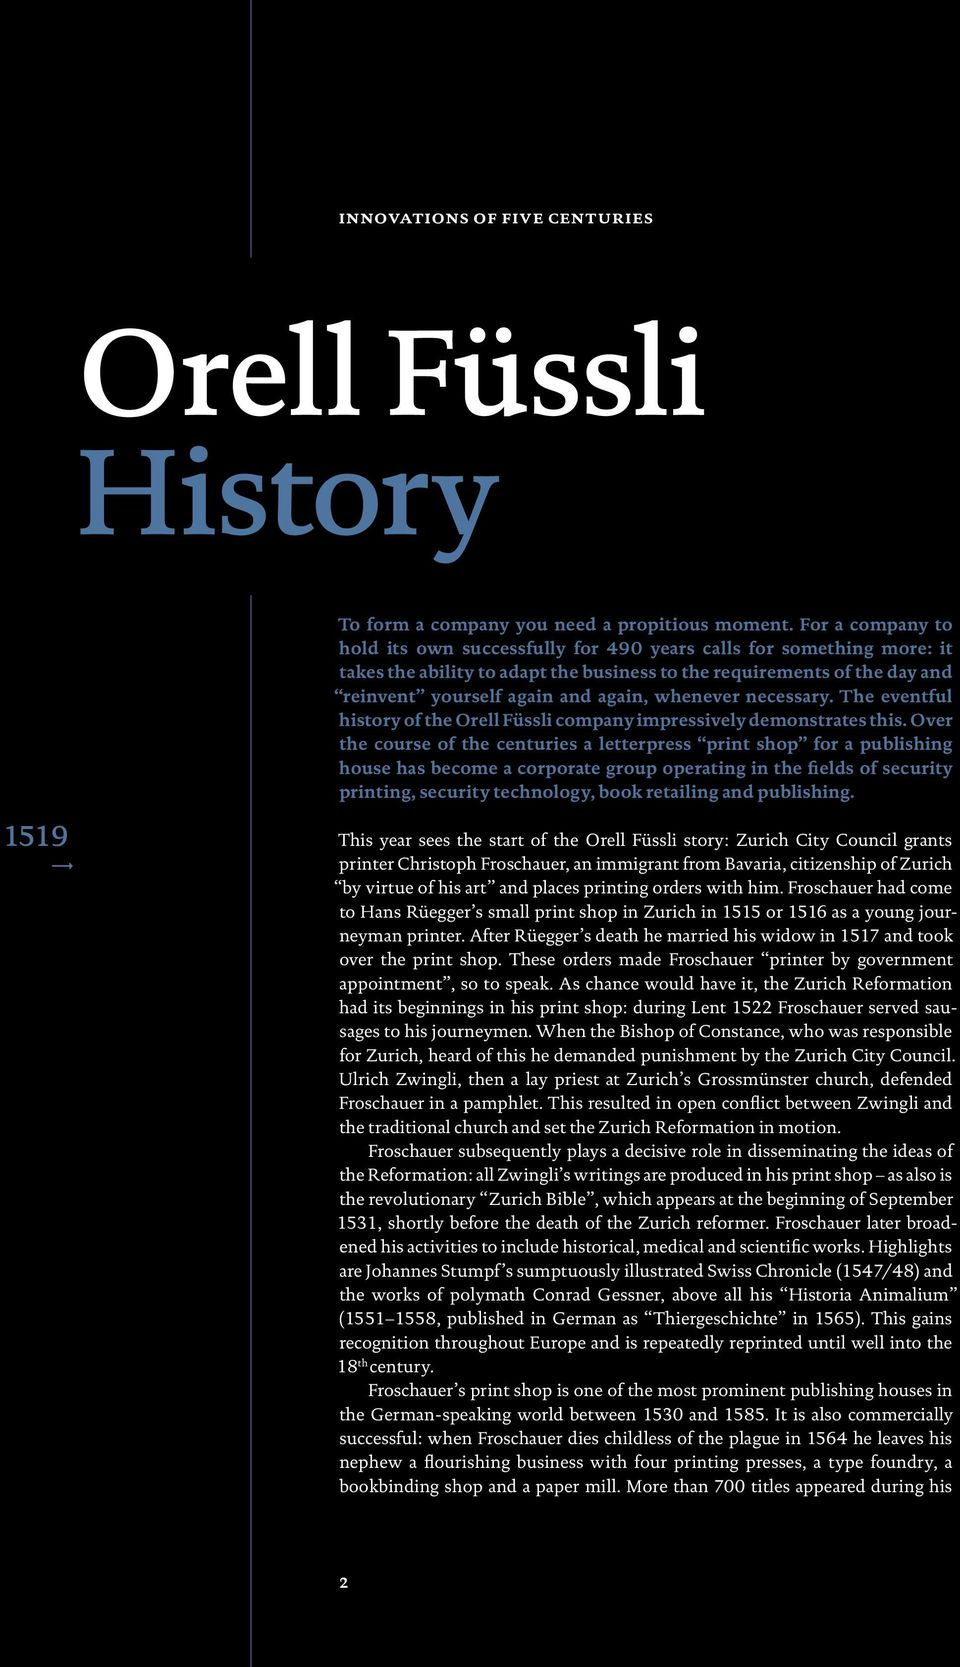 whenever necessary. The eventful history of the Orell Füssli company impressively demonstrates this.